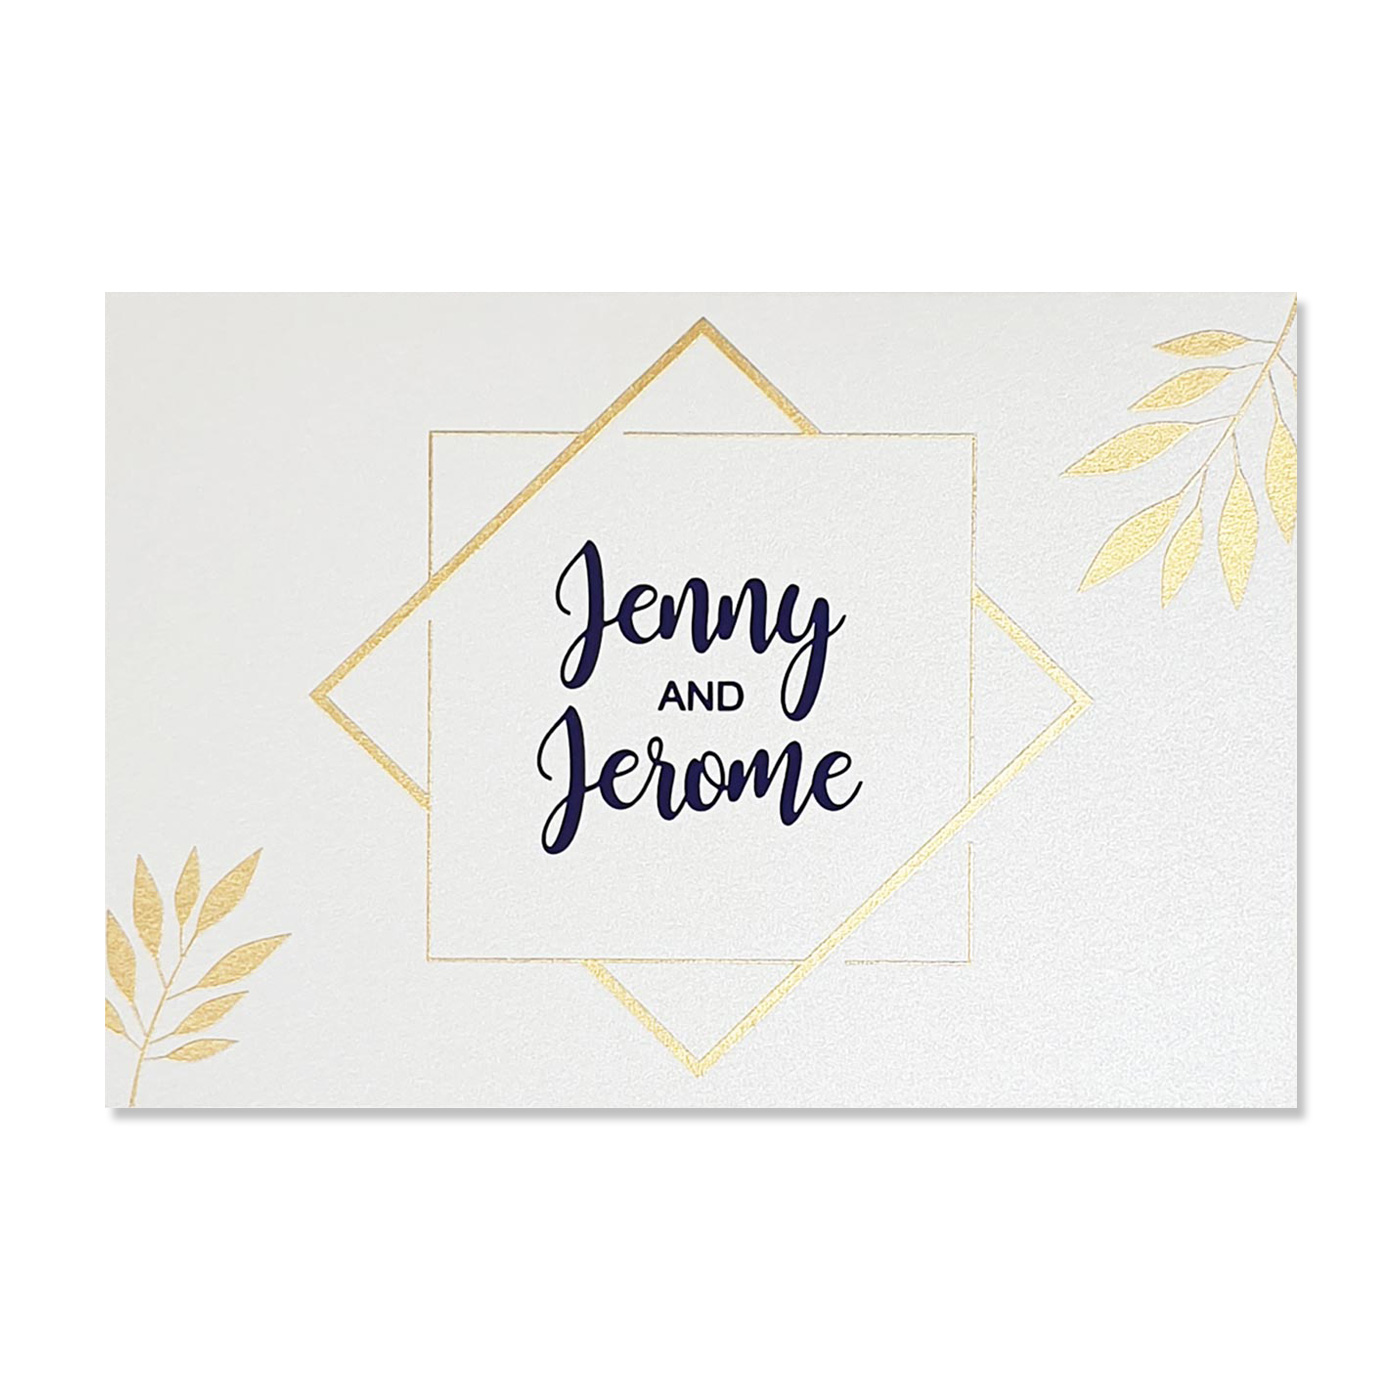 Thank You Cards : TYC-COBALT - 123WeddingCards